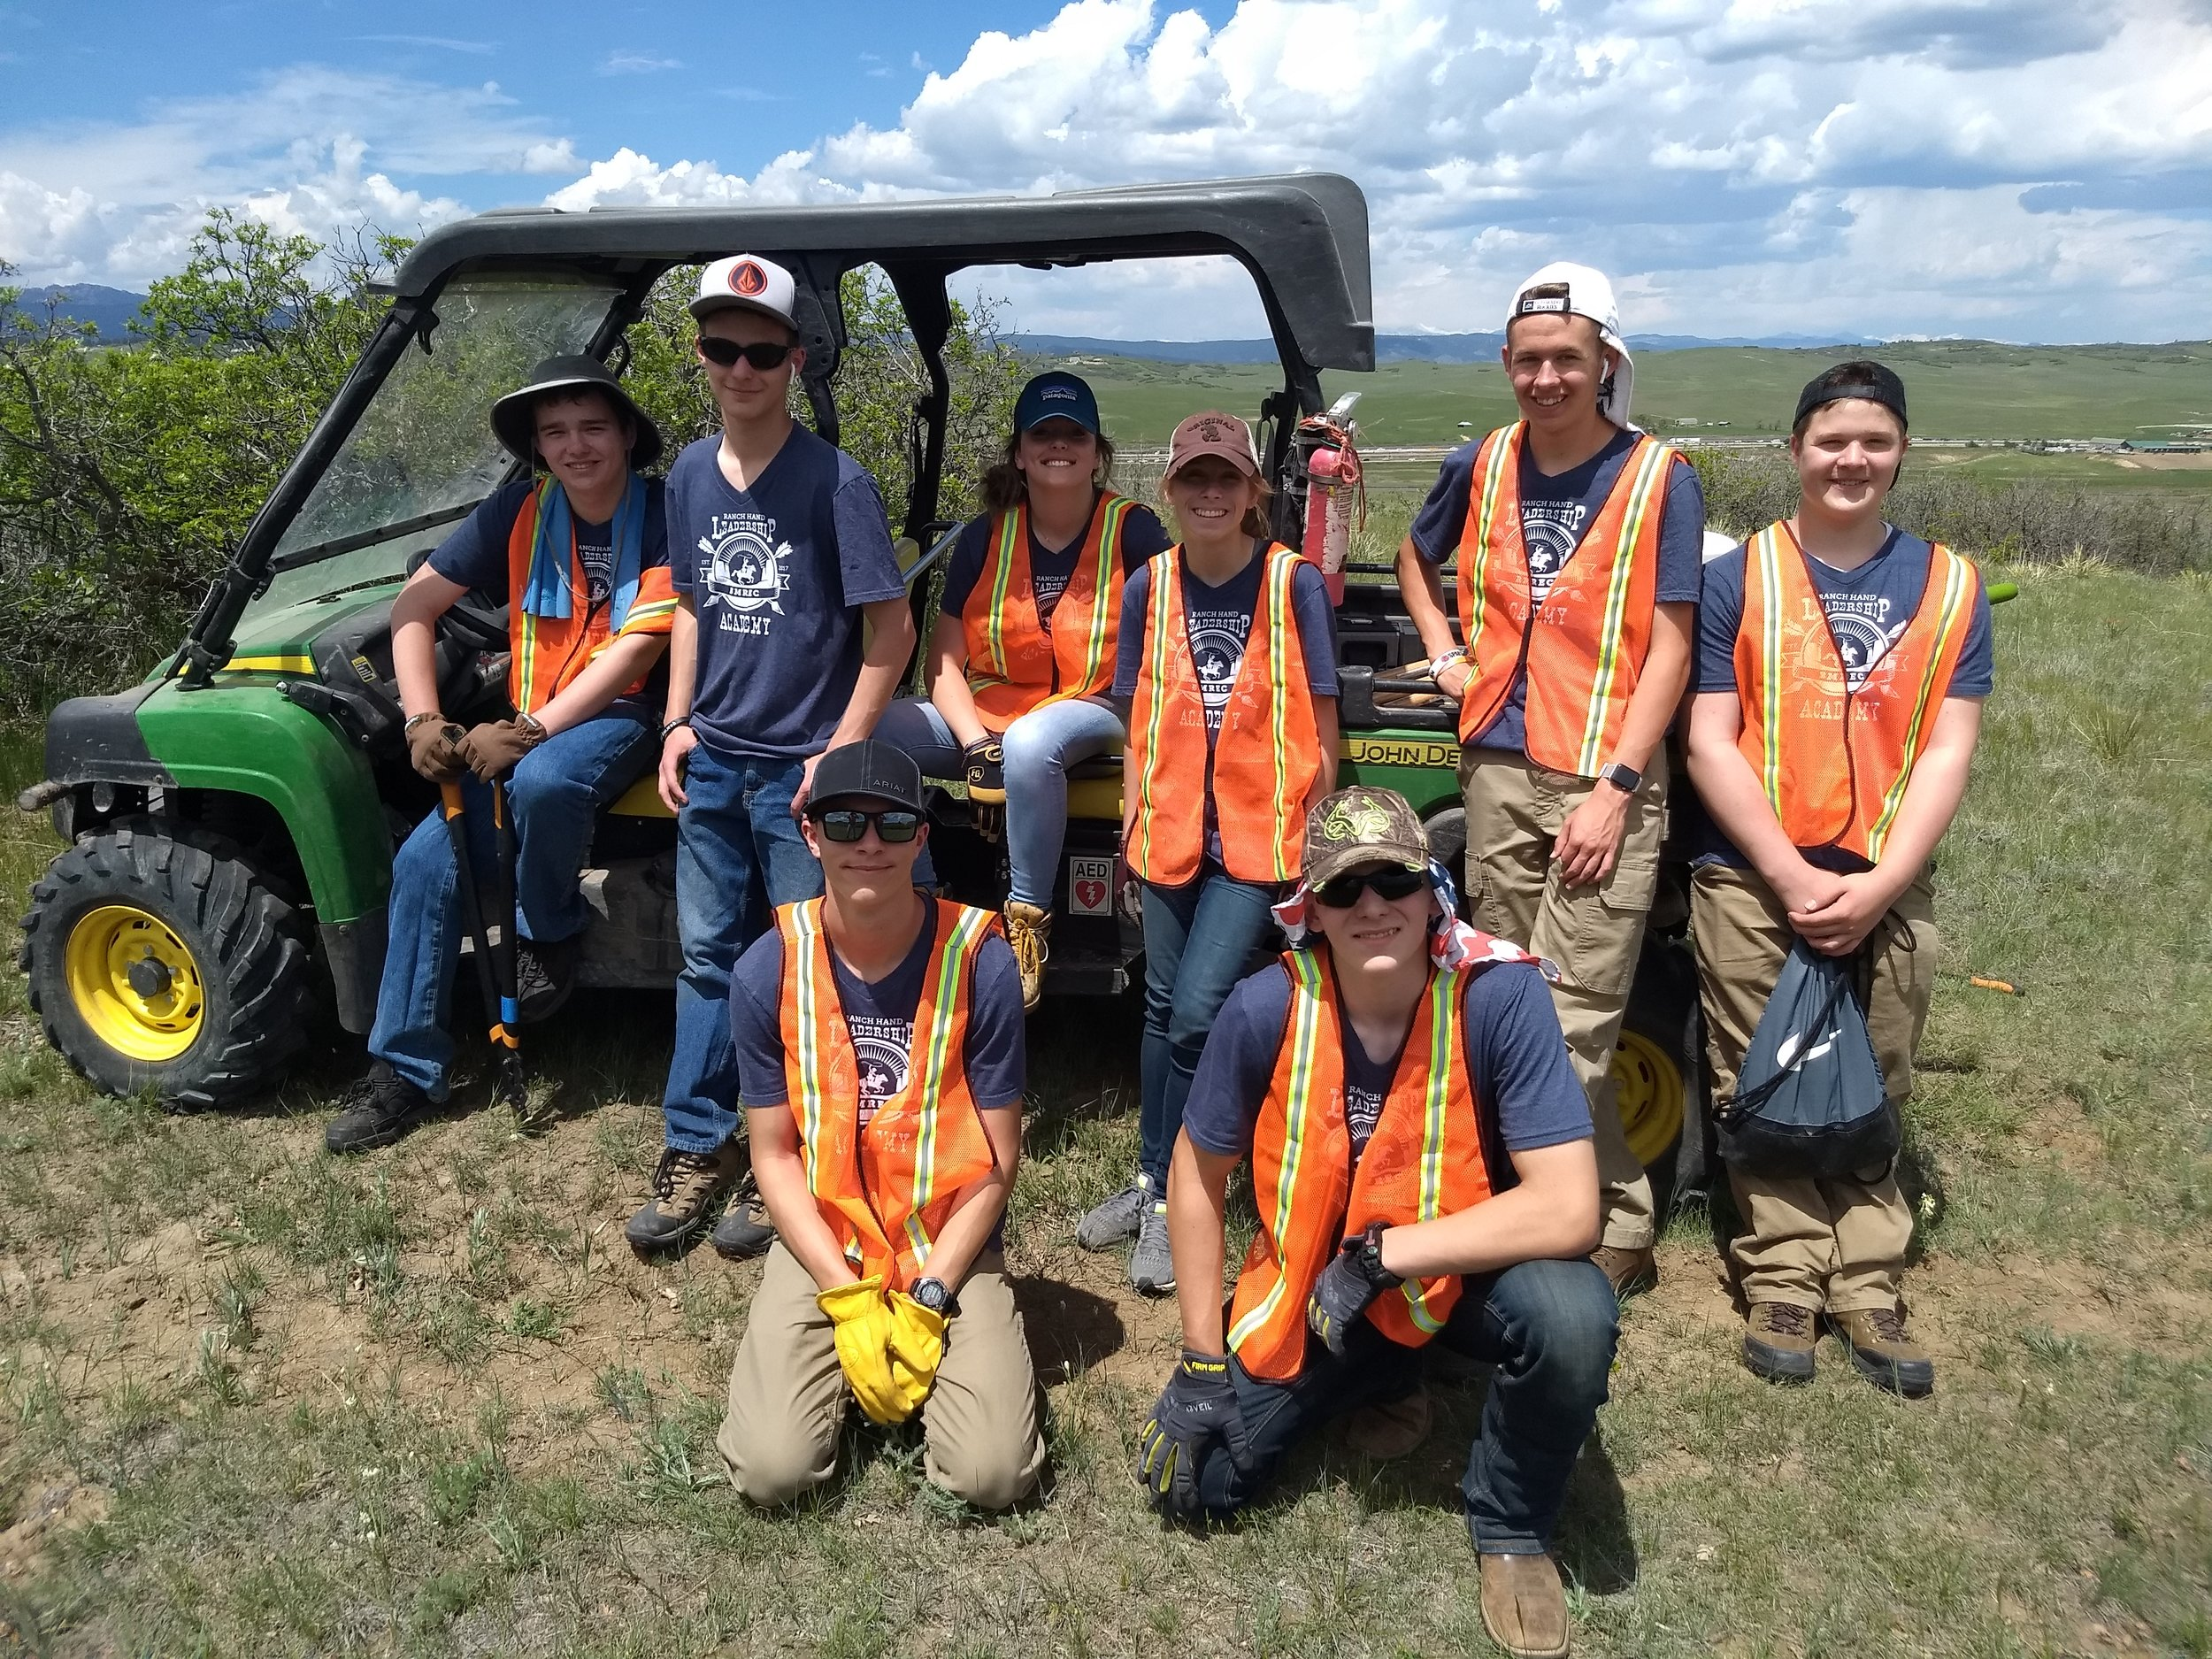 Presenting the 2019 Ranch Hand Leadership Academy youth staff!